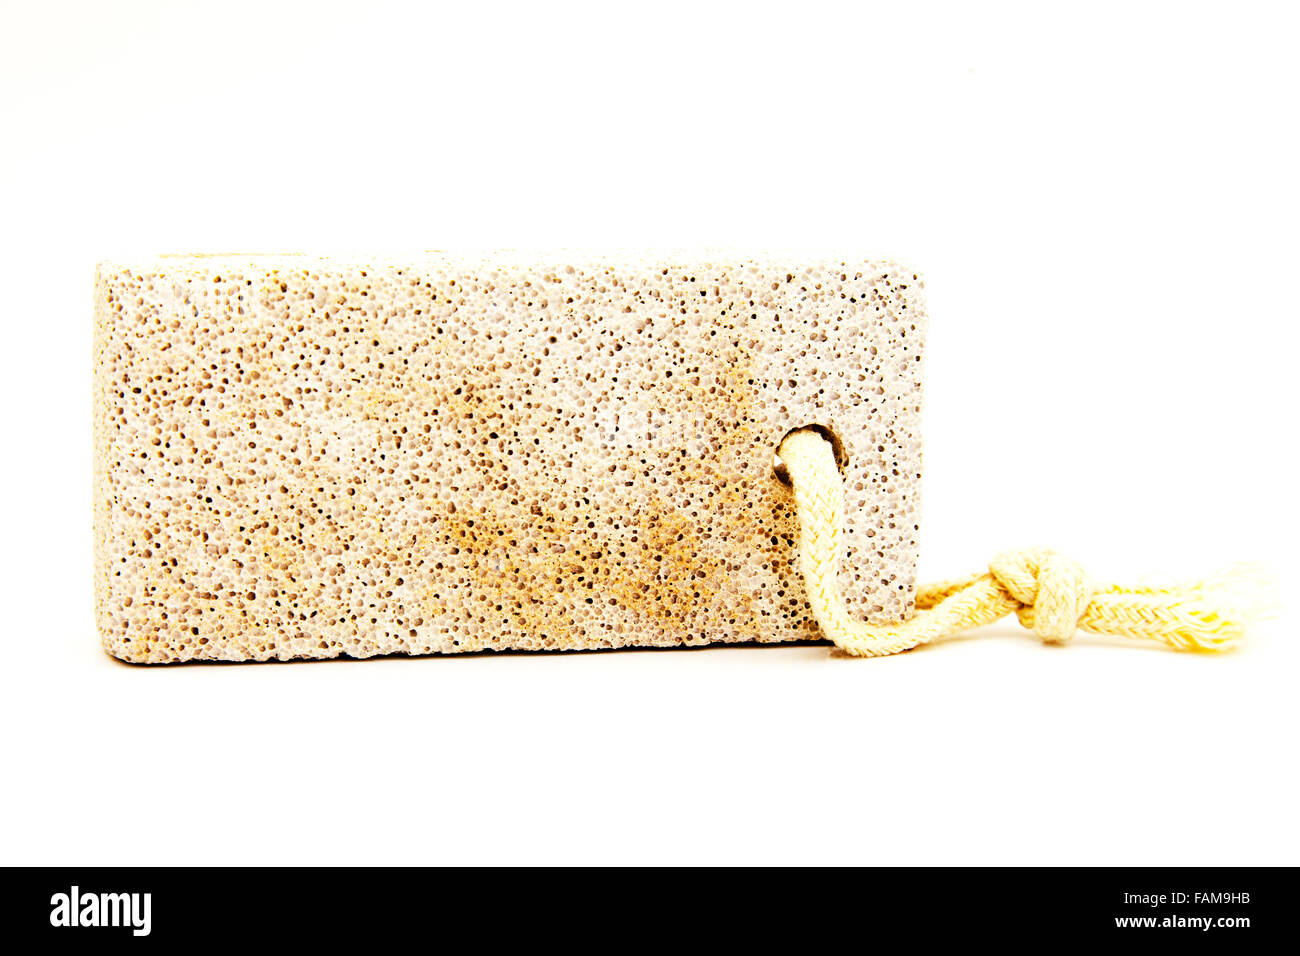 pumice stone porous volcanic rock lava for removing dry skin Cutout cut out white background isolated copy space - Stock Image